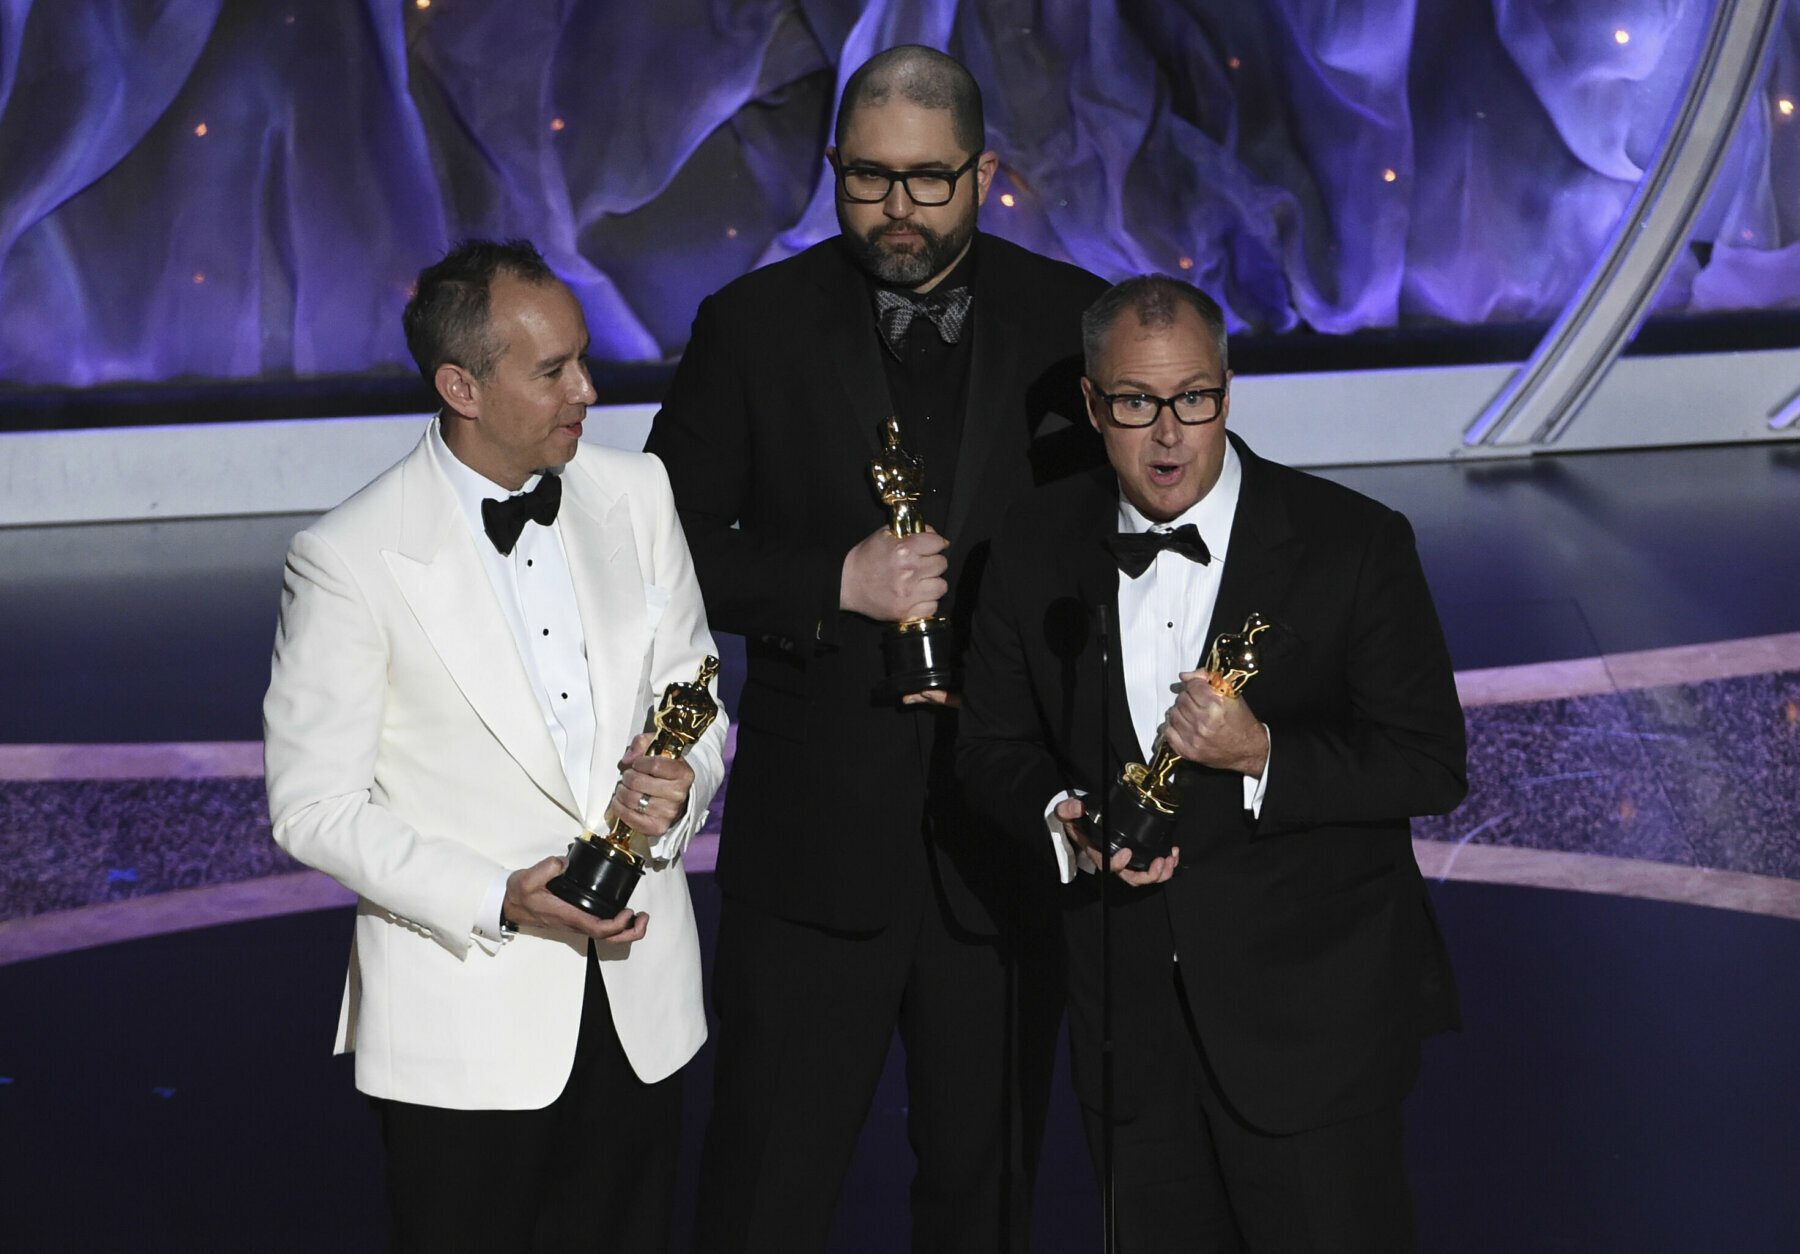 """Jonas Rivera, from left, Josh Cooley and Mark Nielsen accept the award for best animated feature film for """"Toy Story 4"""" at the Oscars on Sunday, Feb. 9, 2020, at the Dolby Theatre in Los Angeles. (AP Photo/Chris Pizzello)"""